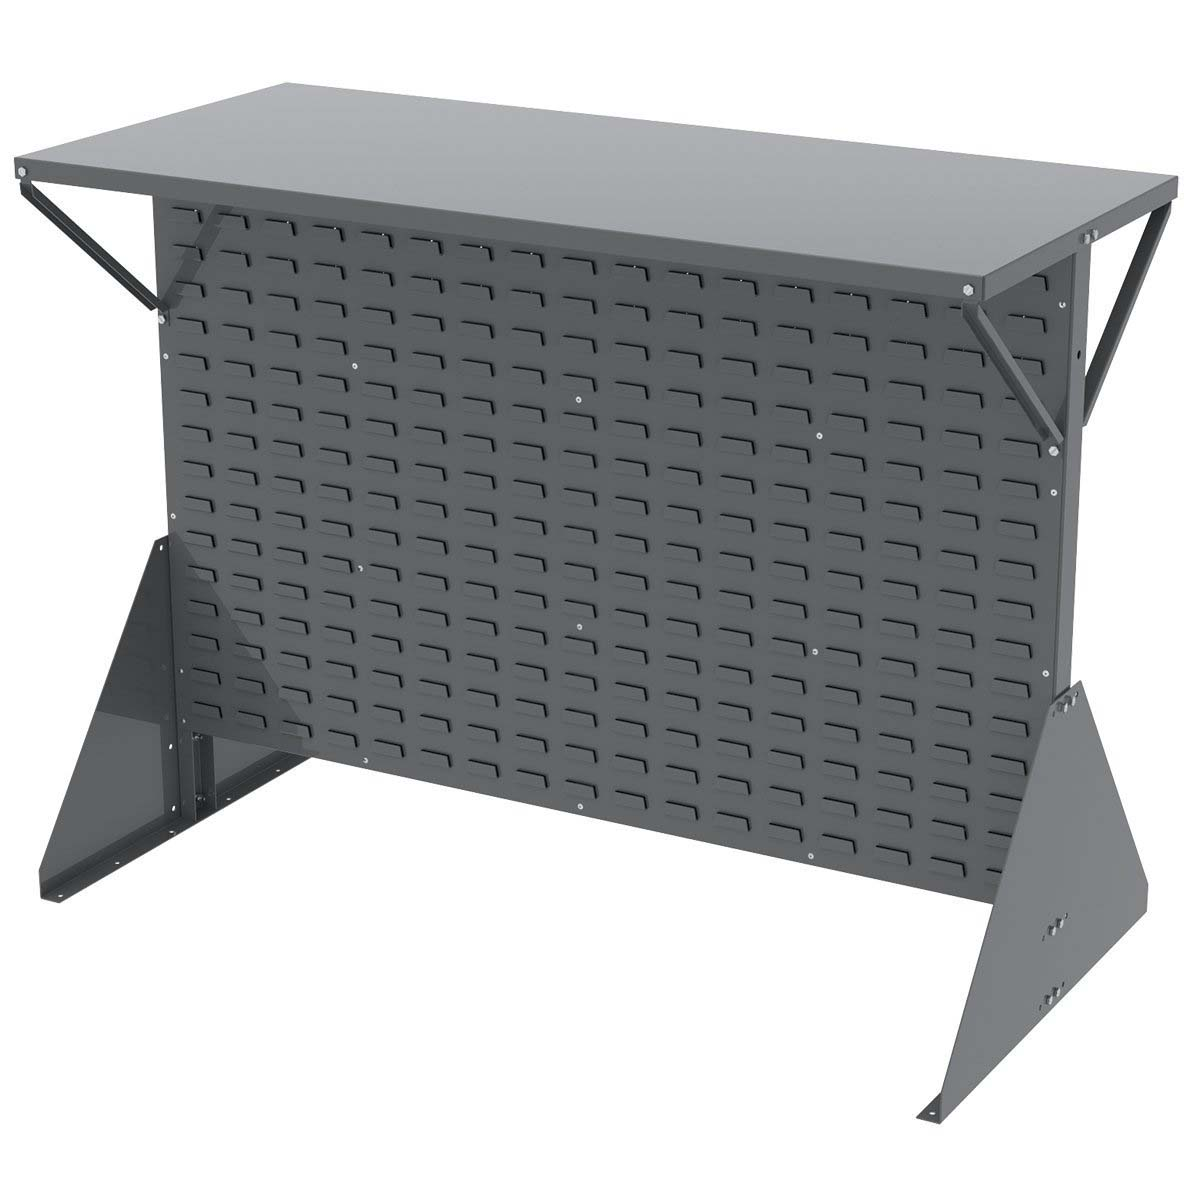 Akromills Storage Organizer Double  Sided Low Profile Floor  Rack - 53X 27X 40 at Sears.com